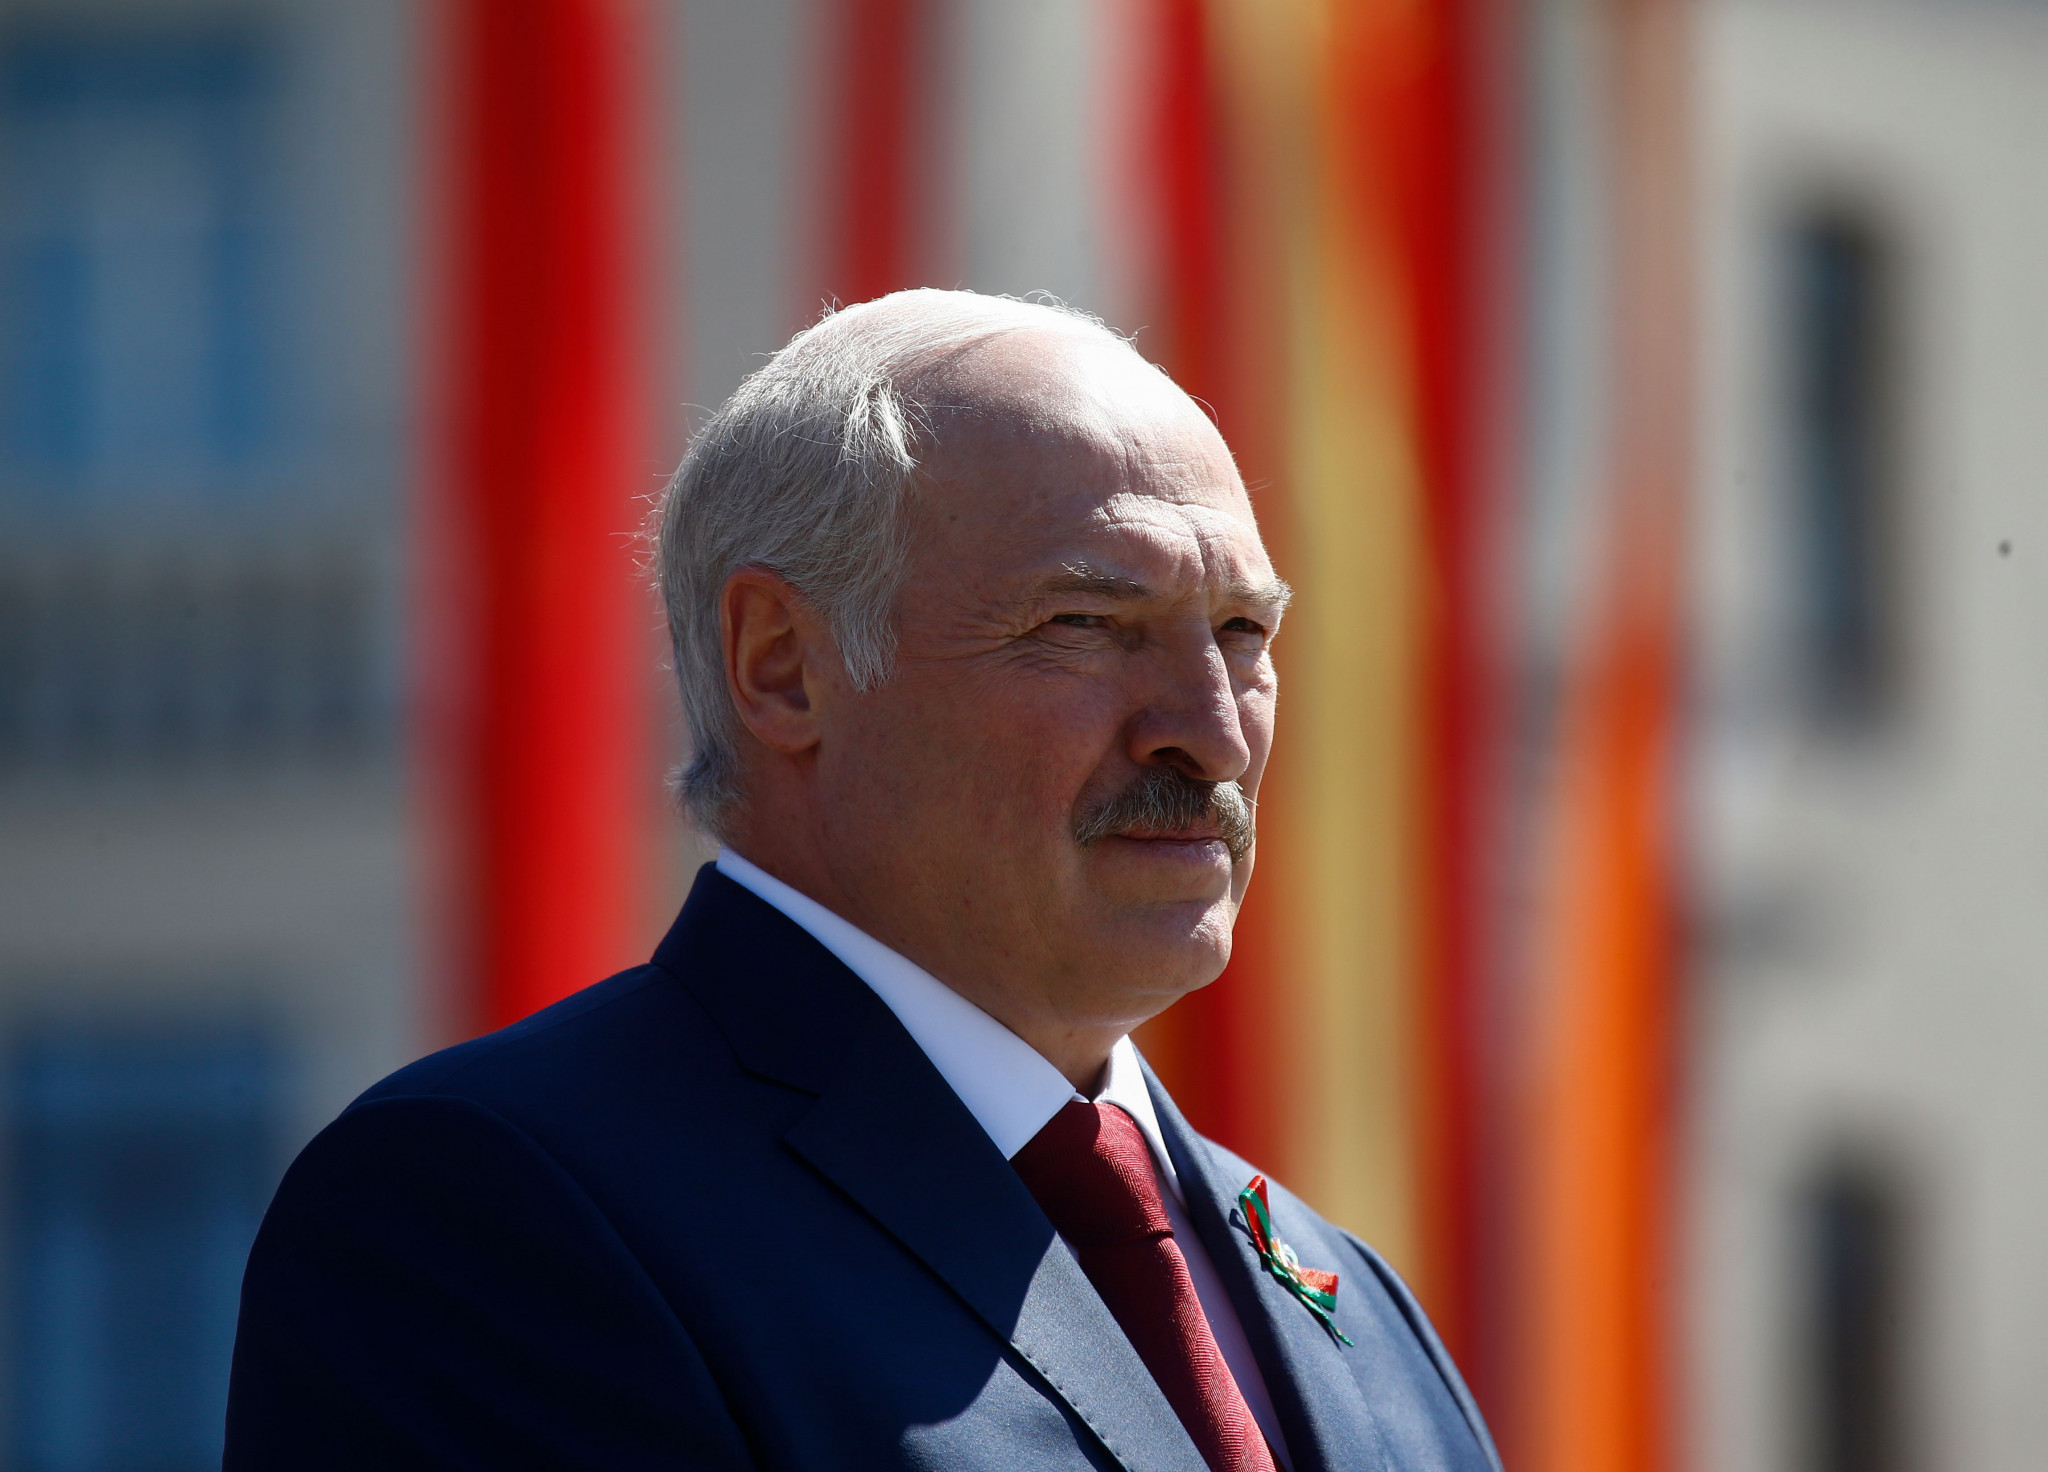 Lukashenko invites world leaders to Minsk 2019 at CIS meeting